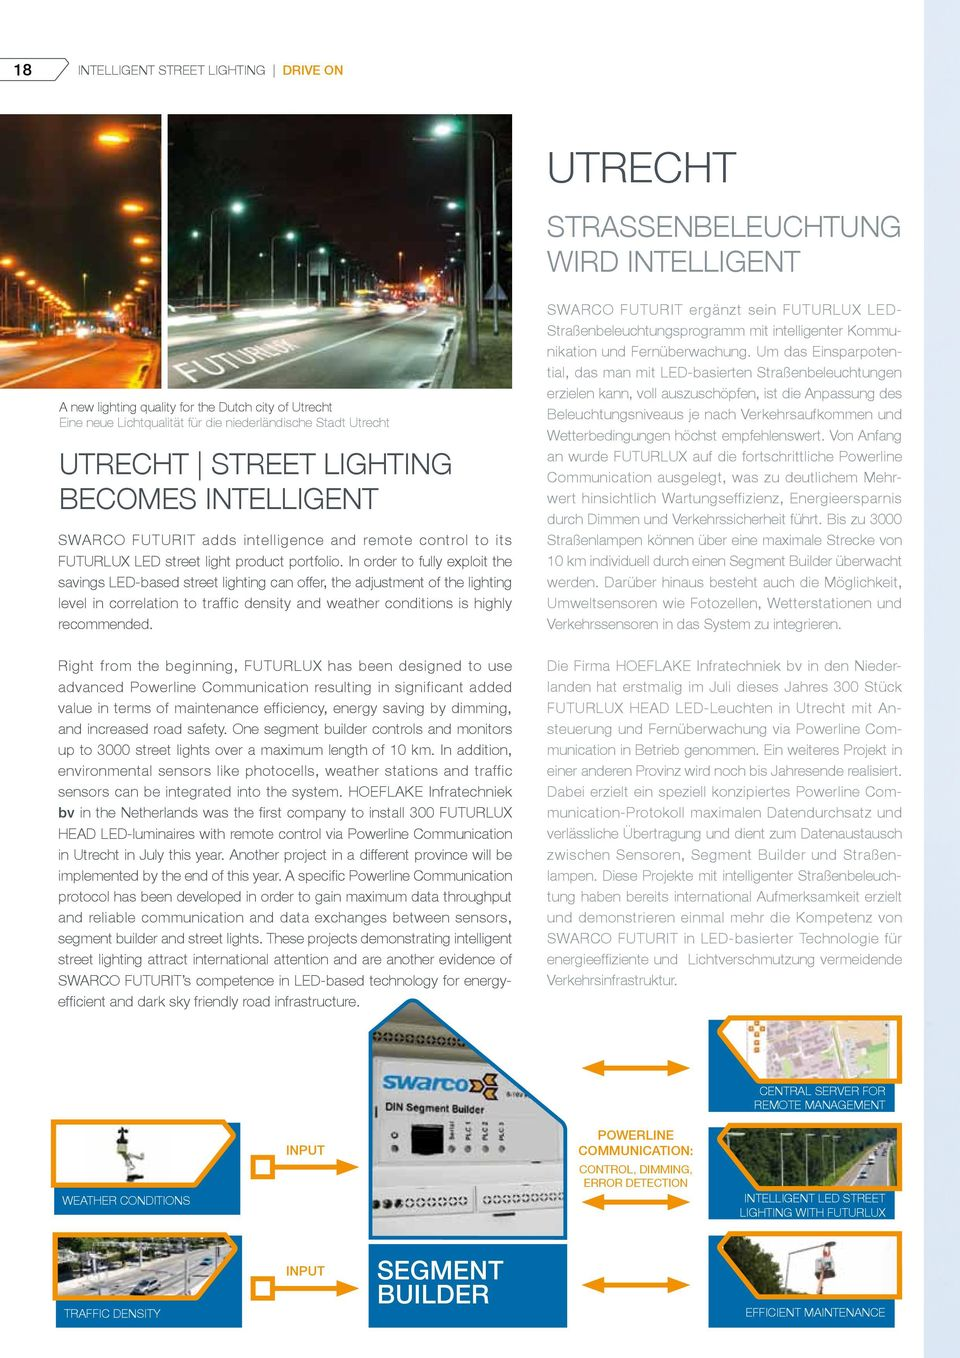 In order to fully exploit the savings LED-based street lighting can offer, the adjustment of the lighting level in correlation to traffic density and weather conditions is highly recommended.